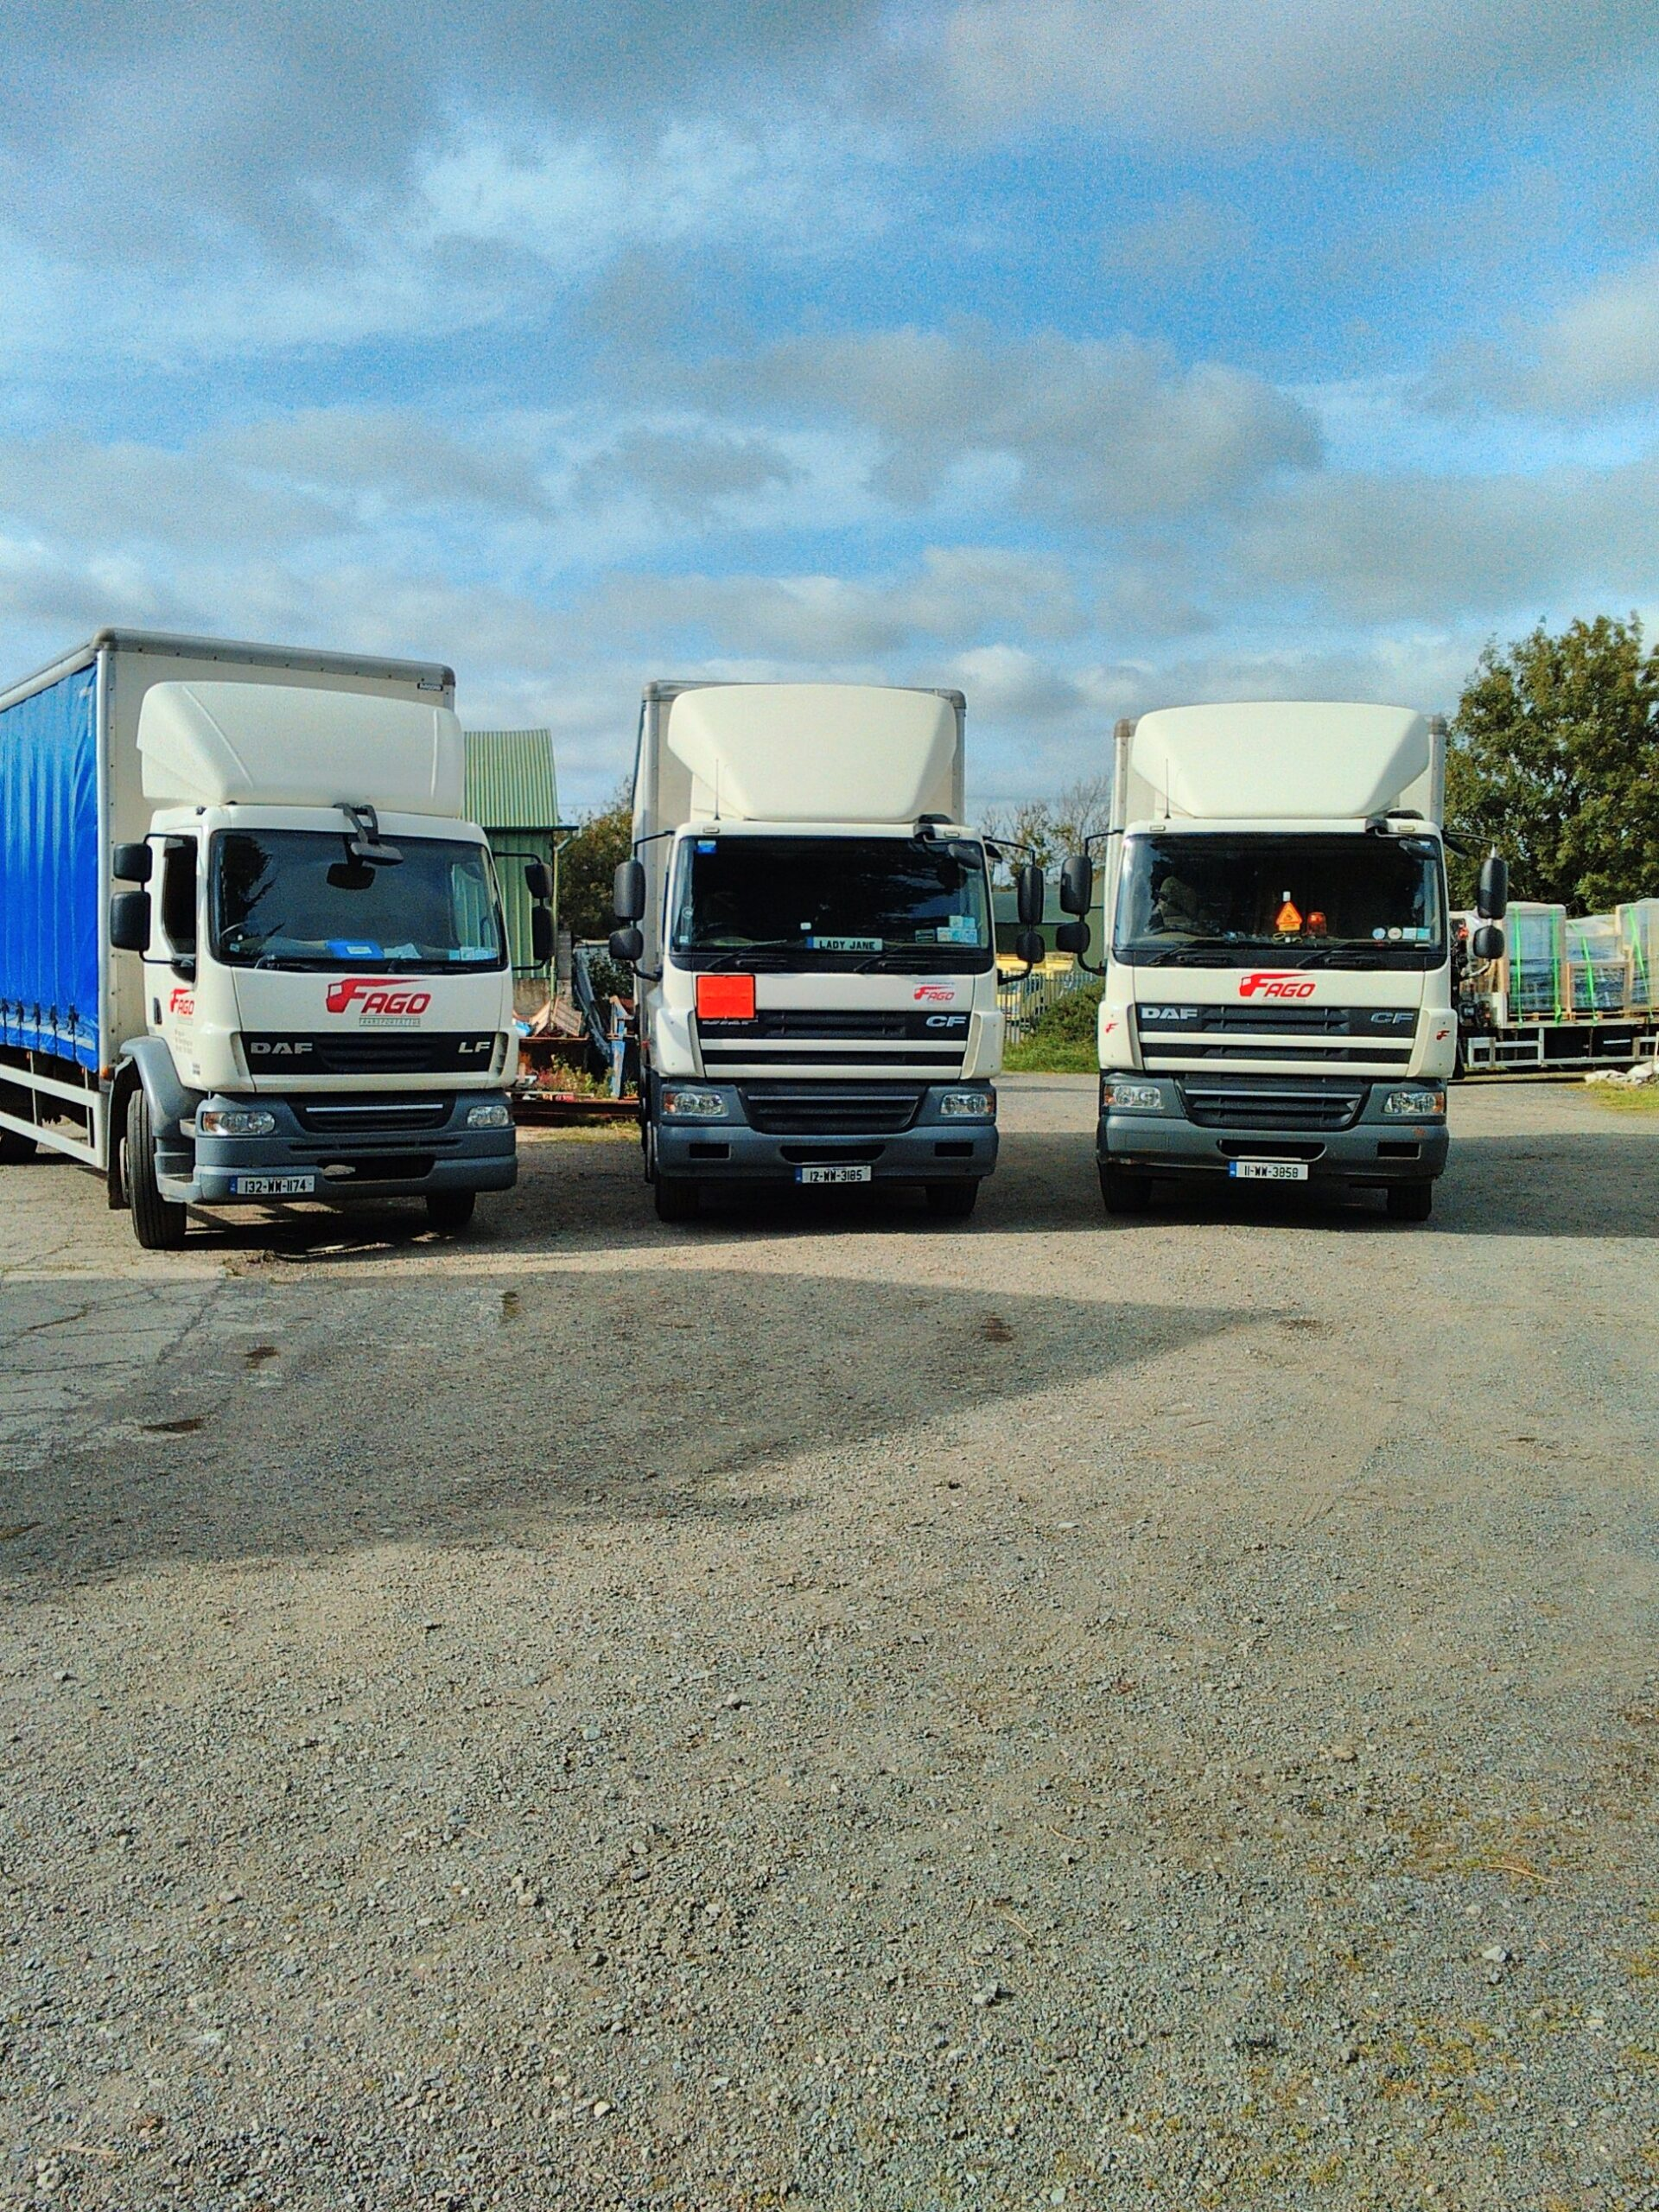 Fago Transportation offers a range of trucks for all of your transport needs